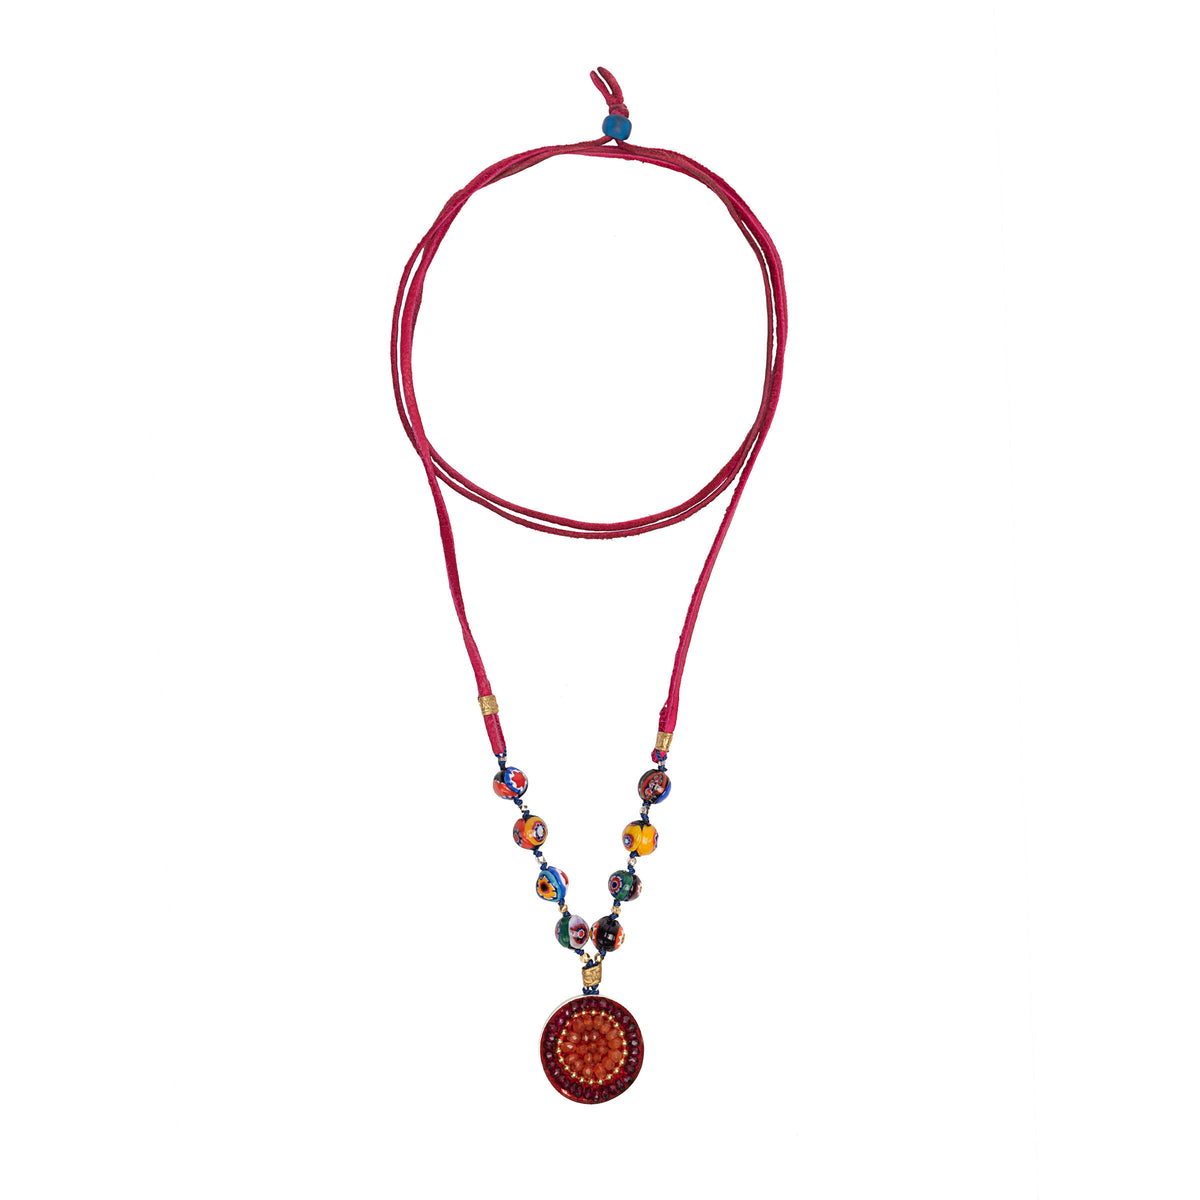 Wanderlust Murano Millefiori glass on leather with garnet and carnelian mosaic pendant (Murano)